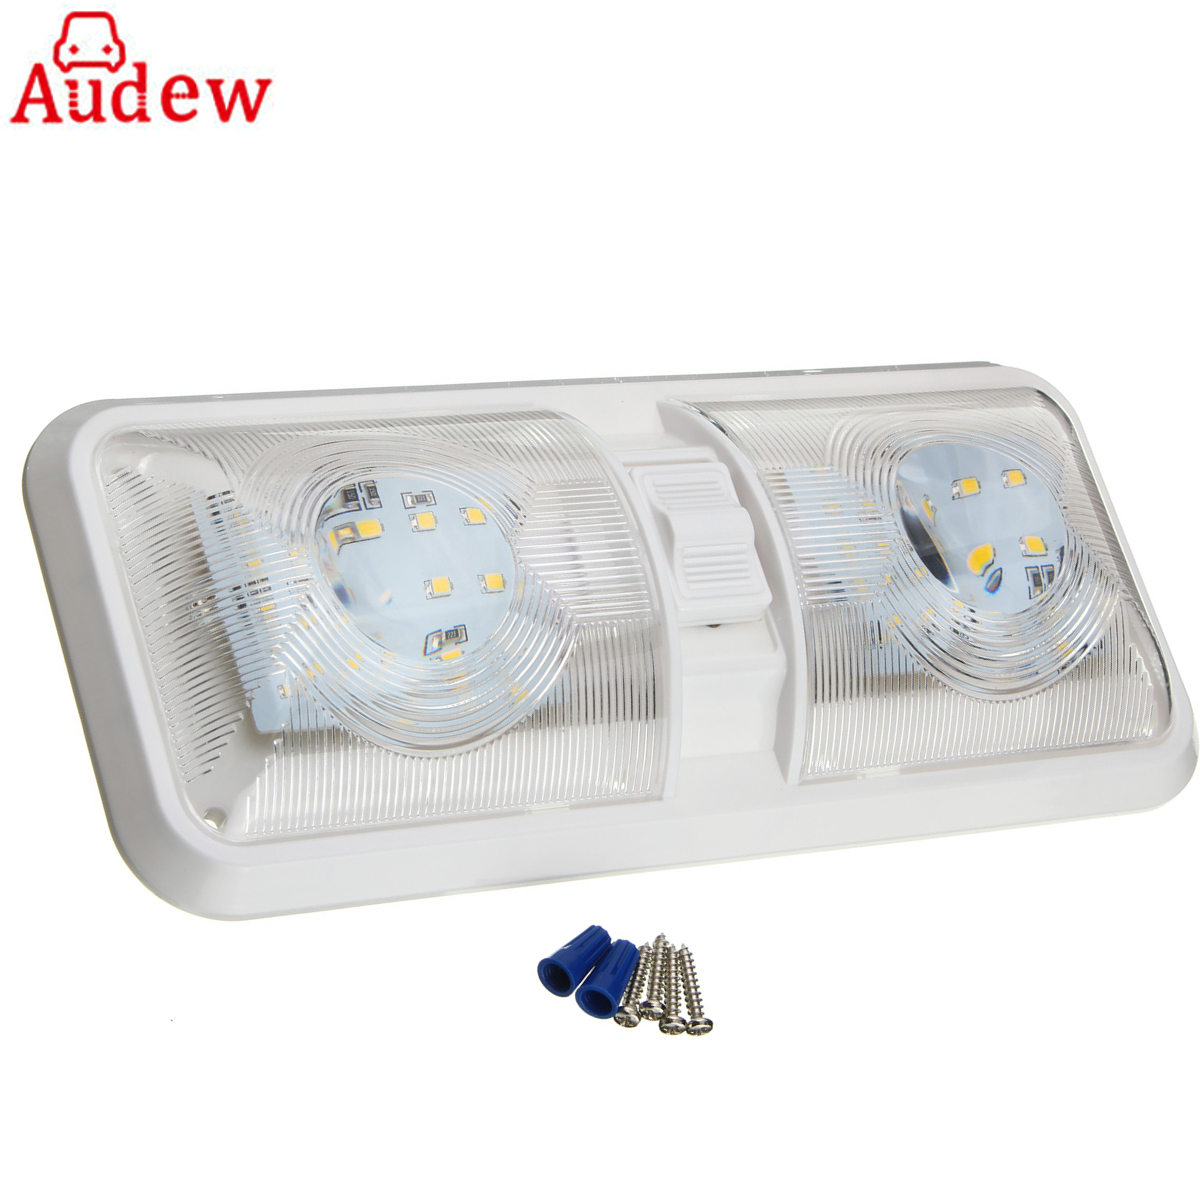 1Pcs Car Dome Light 12V 48 LED Interior Roof Ceiling Reading Lamp For RV Boat For Camper Trailer Plastic White for suzuki 2004 2005 white black blue gsxr 600 750 fairing kit k4 gsxr600 qtv 04 05 gsxr750 fairings kits motorcycle 894